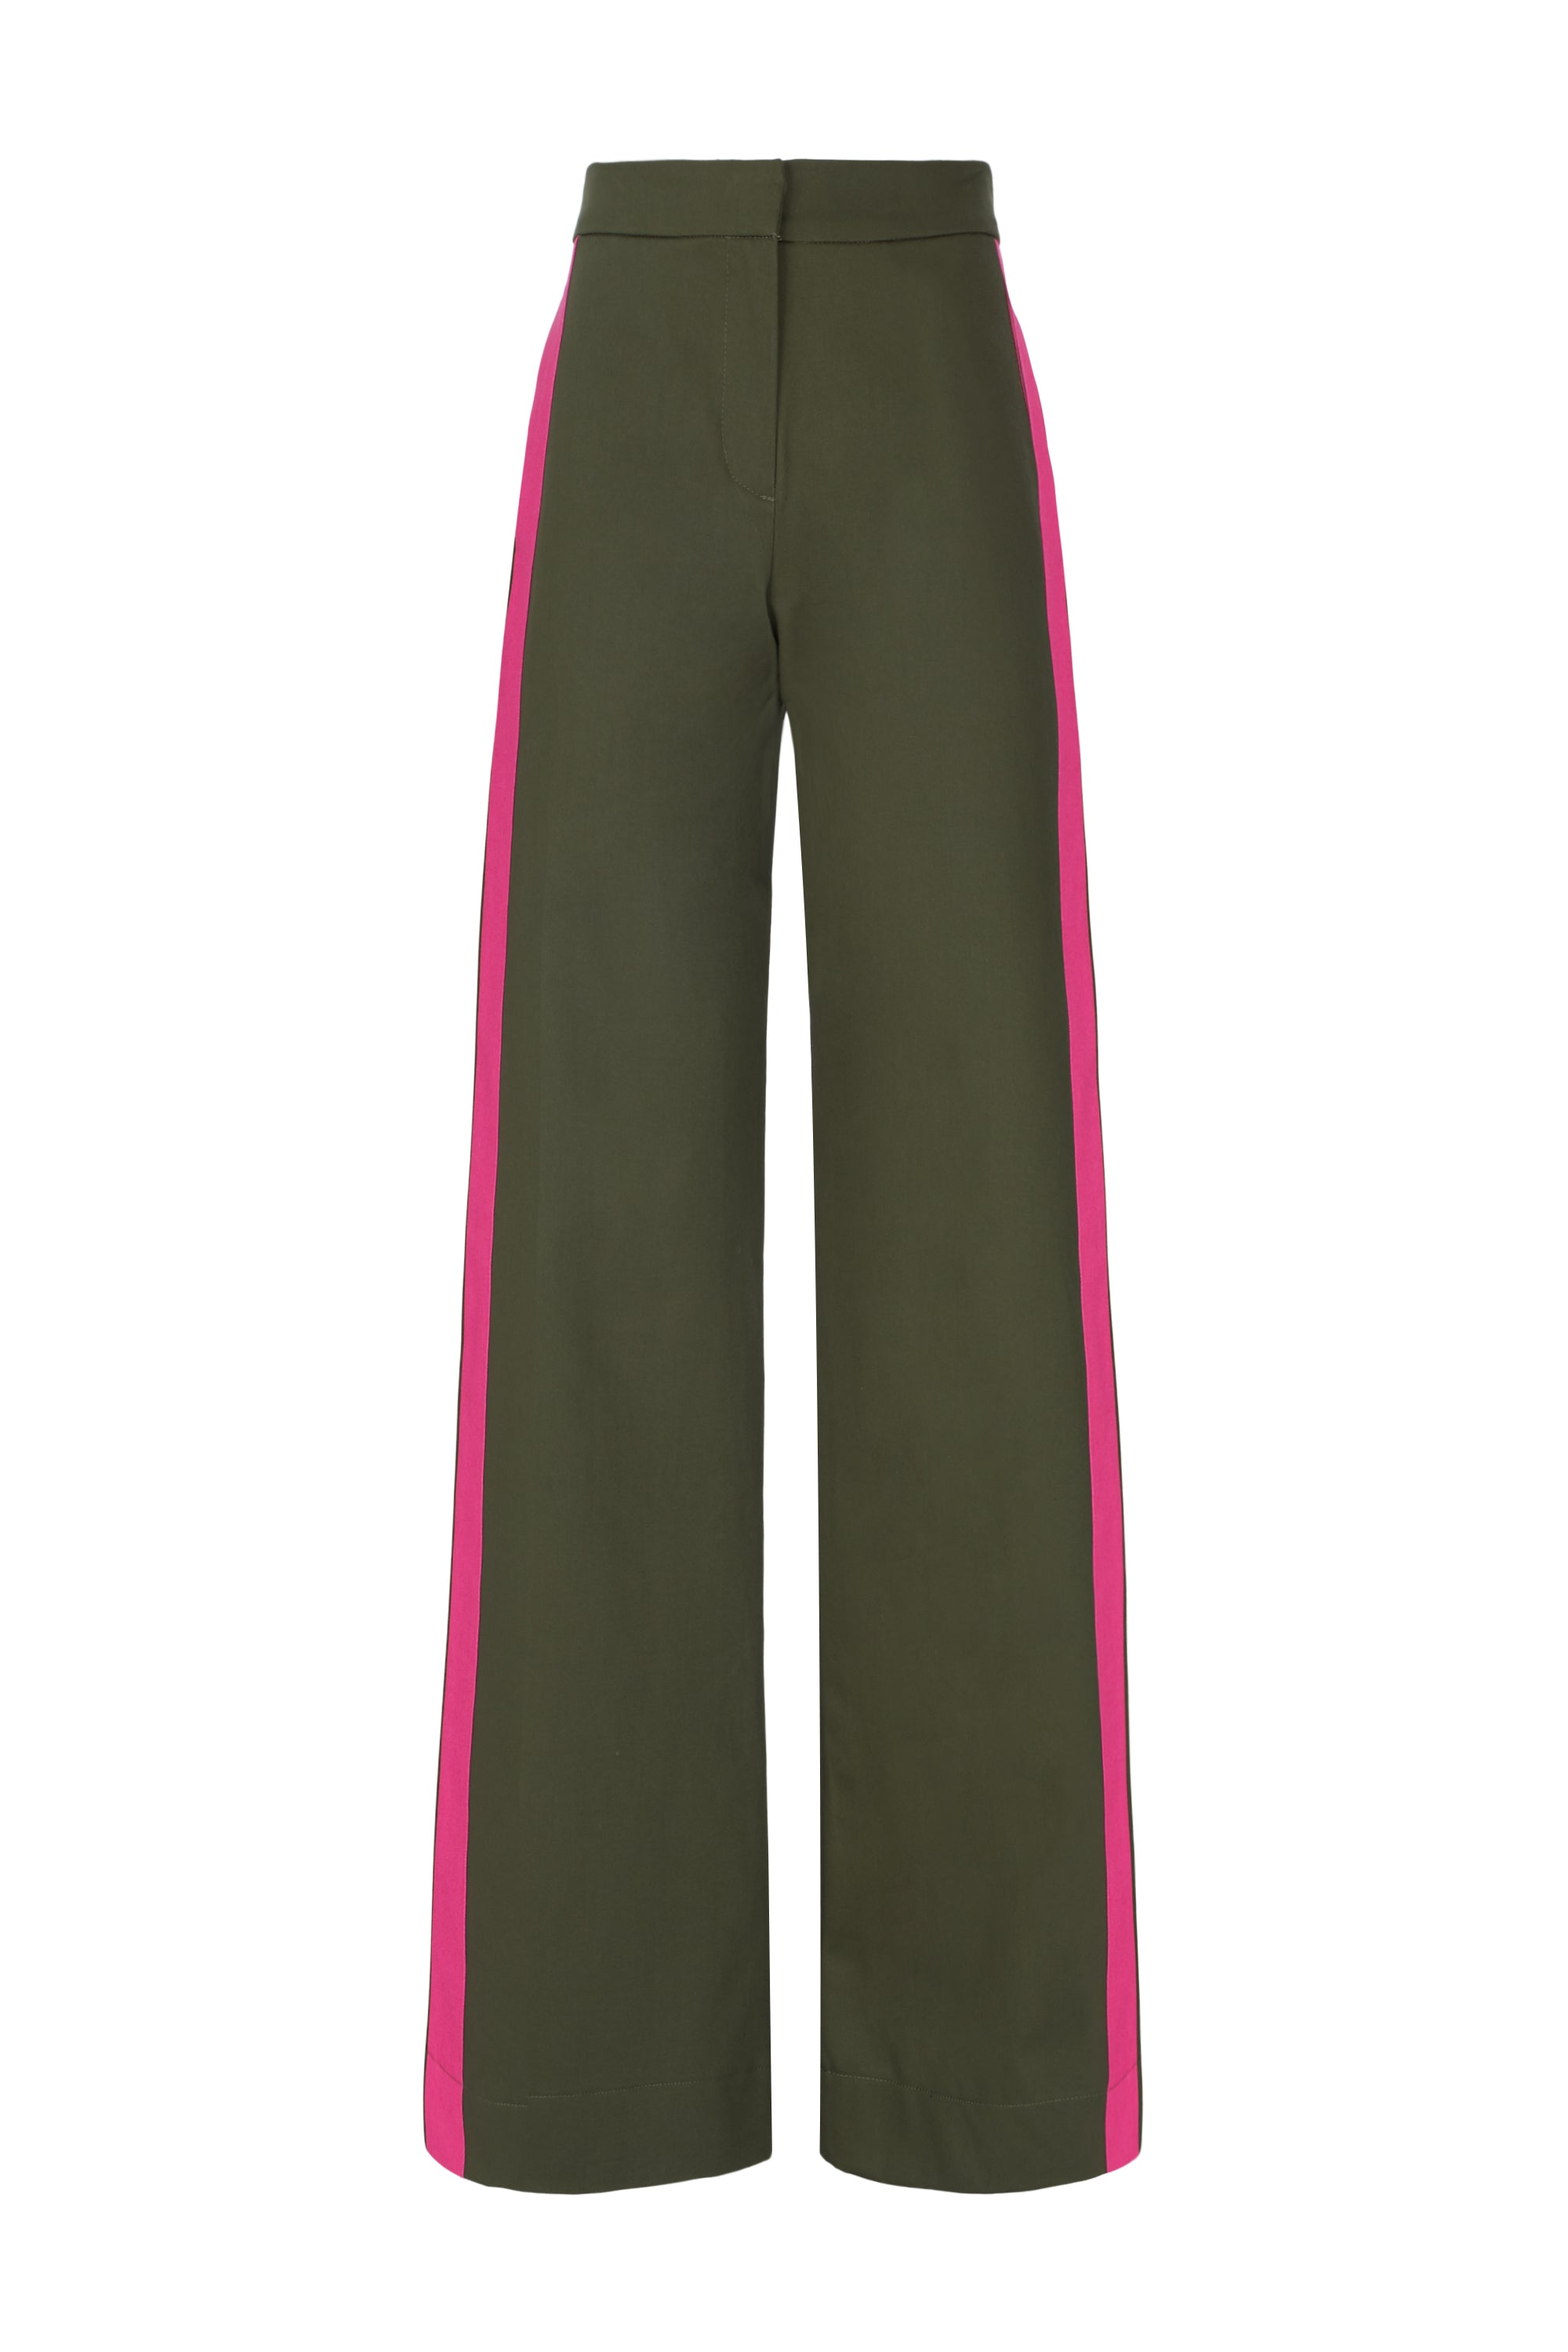 The Flat Front Trouser - Khaki & Pink Cotton